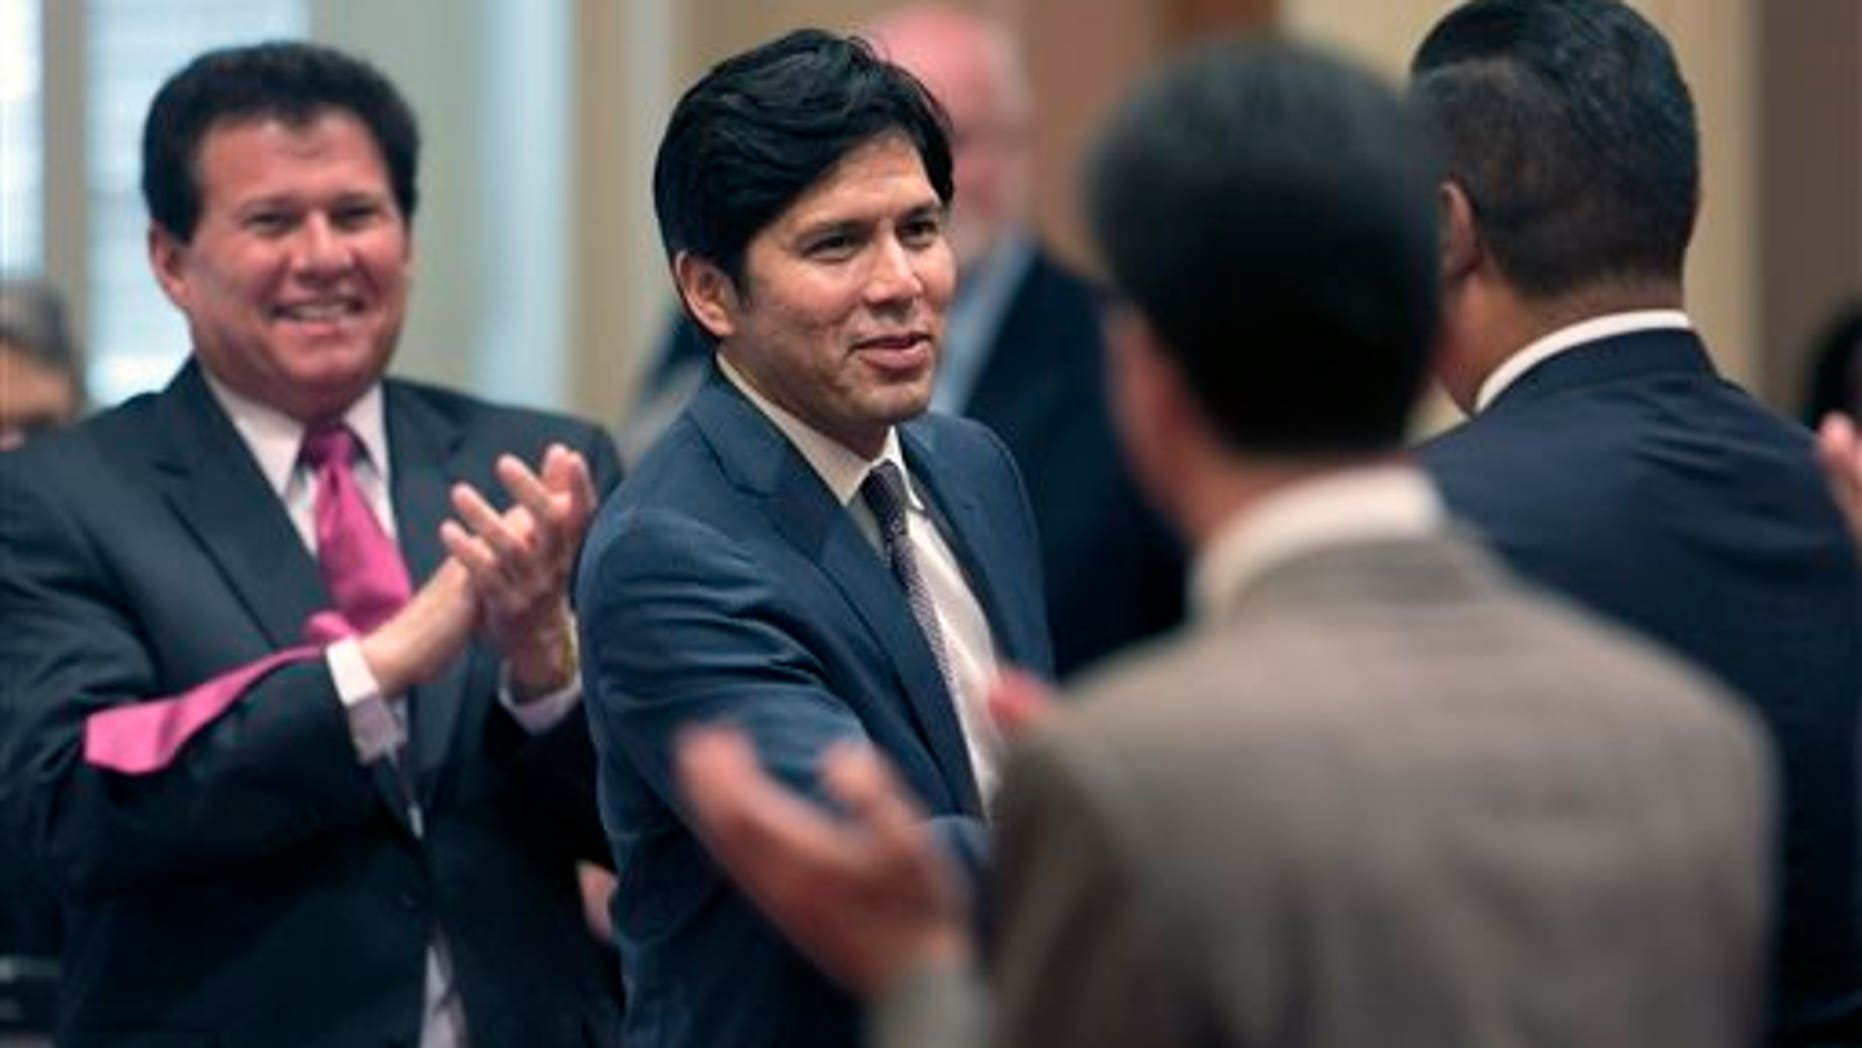 California Senate leader Kevin de Leon shaking hands with lawmakers in 2014.